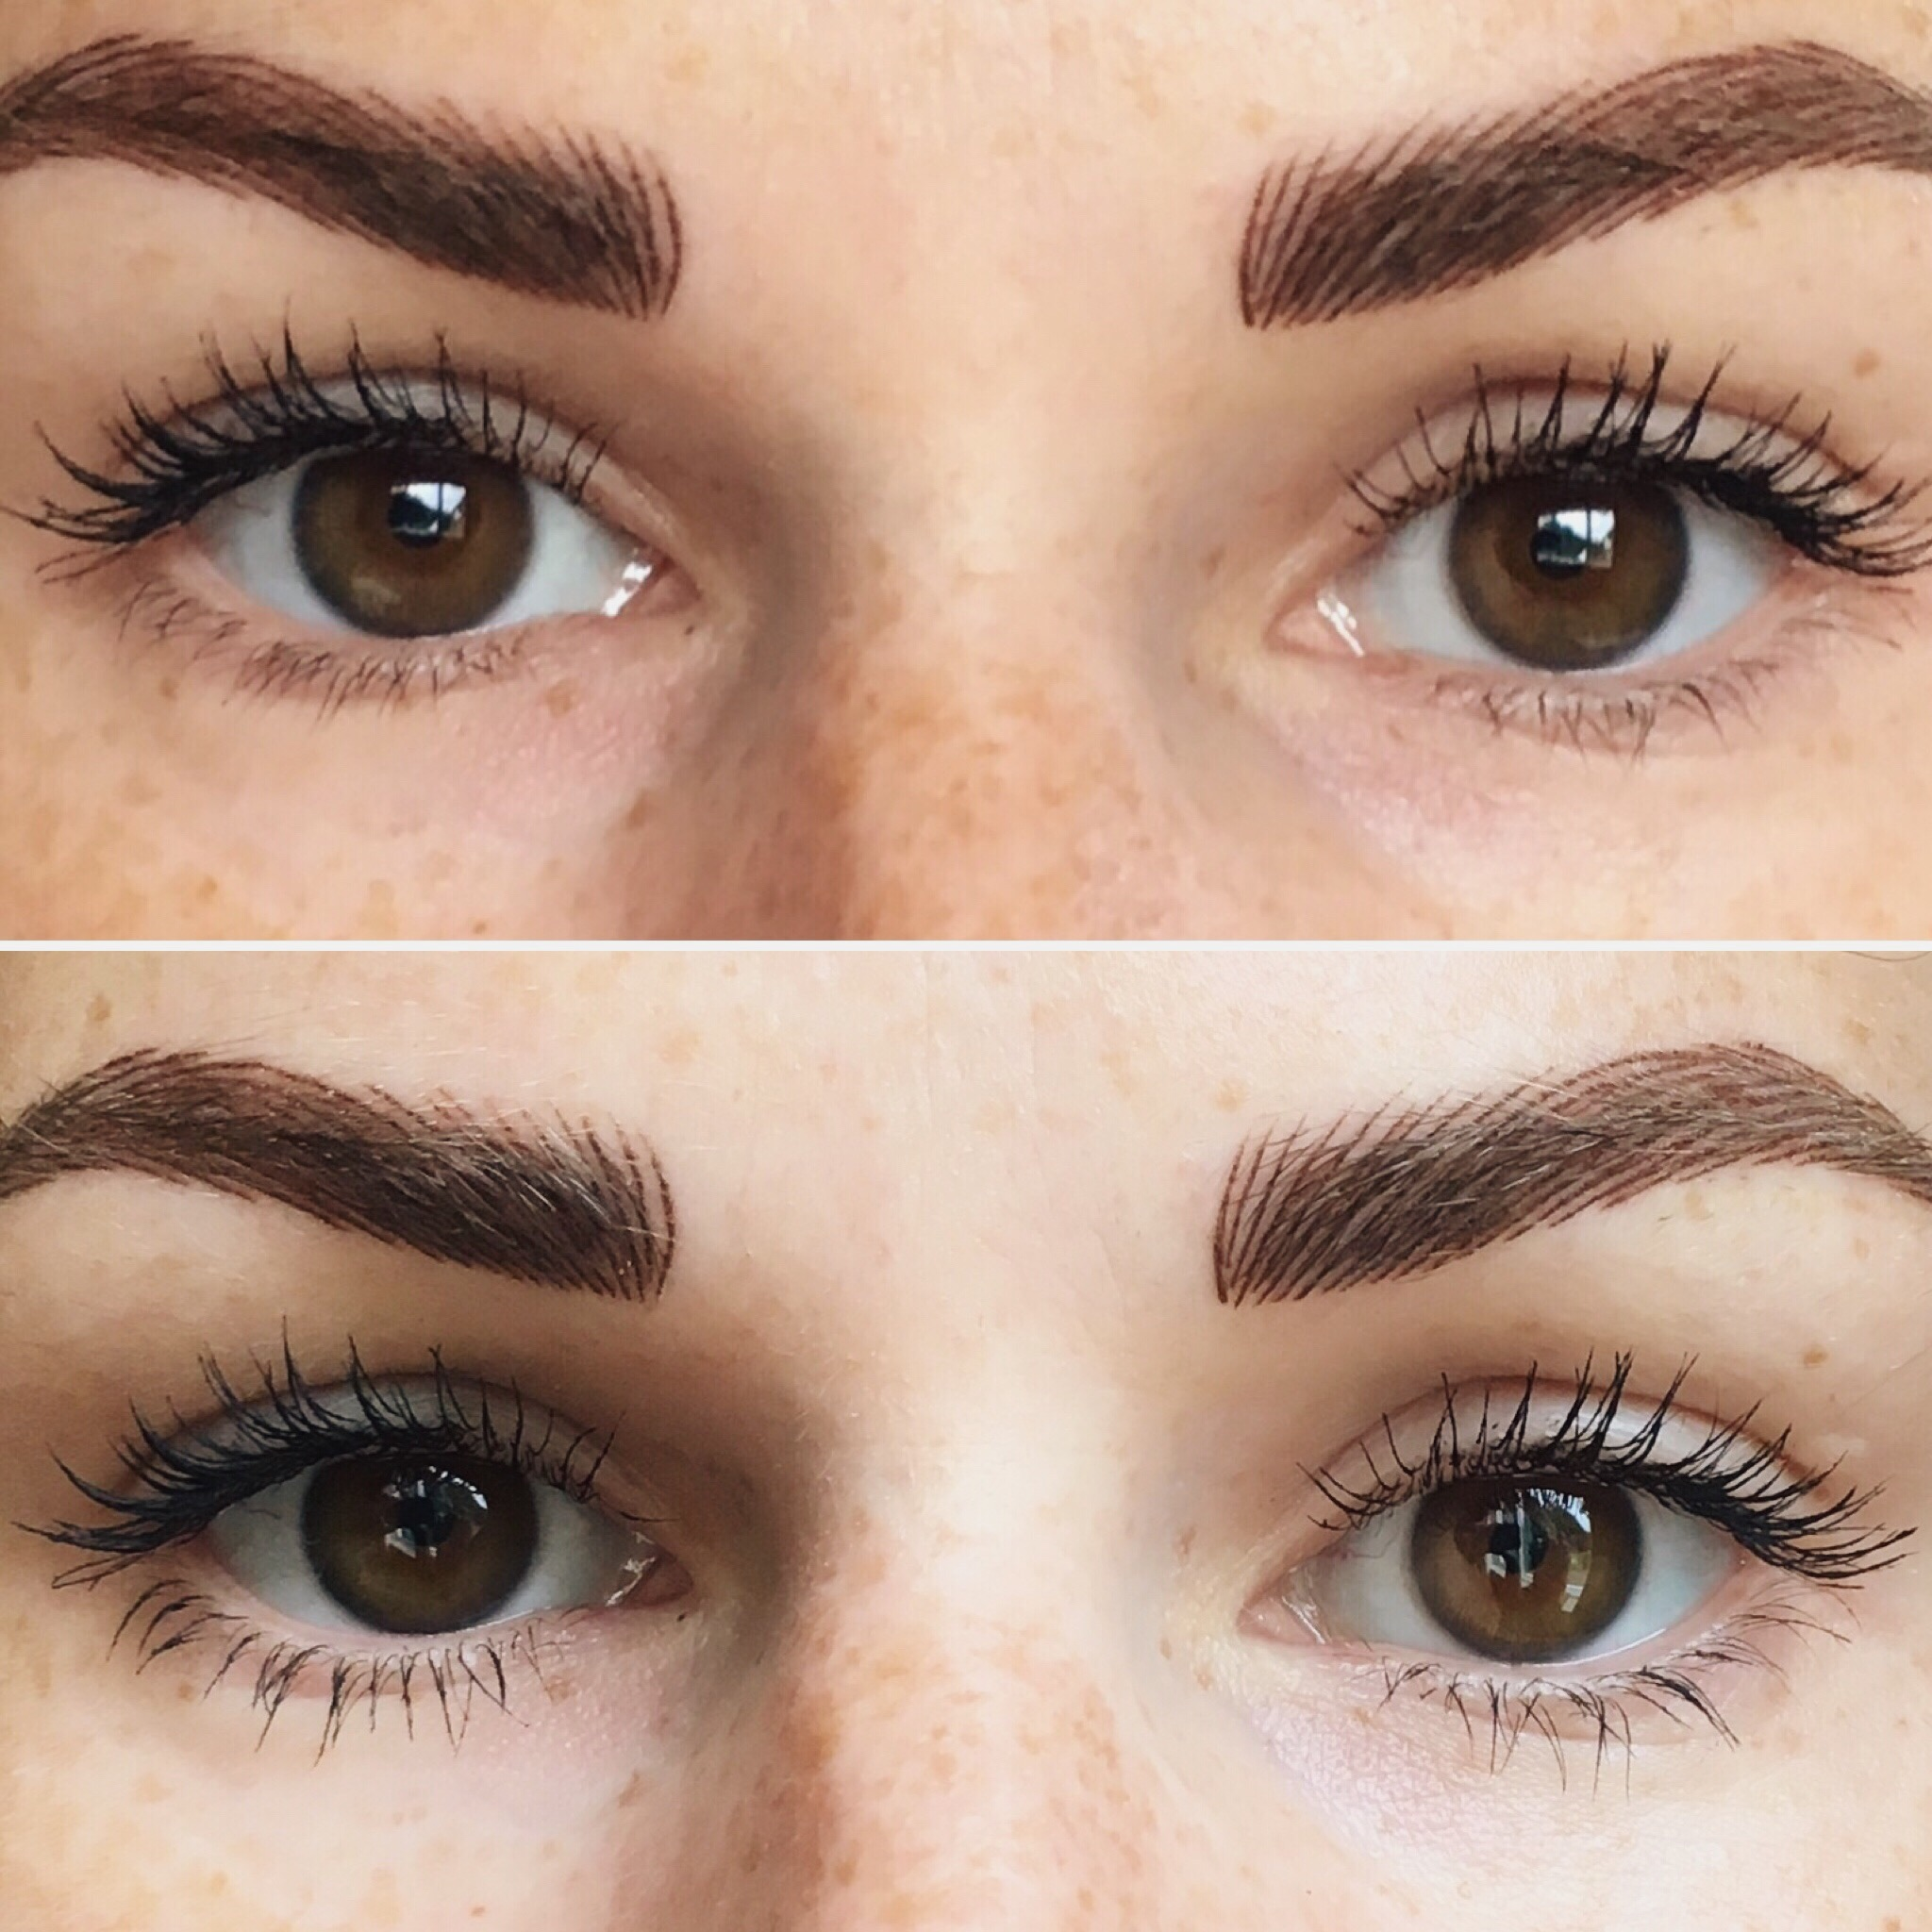 45471a51ad6 ... Top: Mascara applied on upper lashes, Bottom: Mascara applied on both  upper and lower lashes